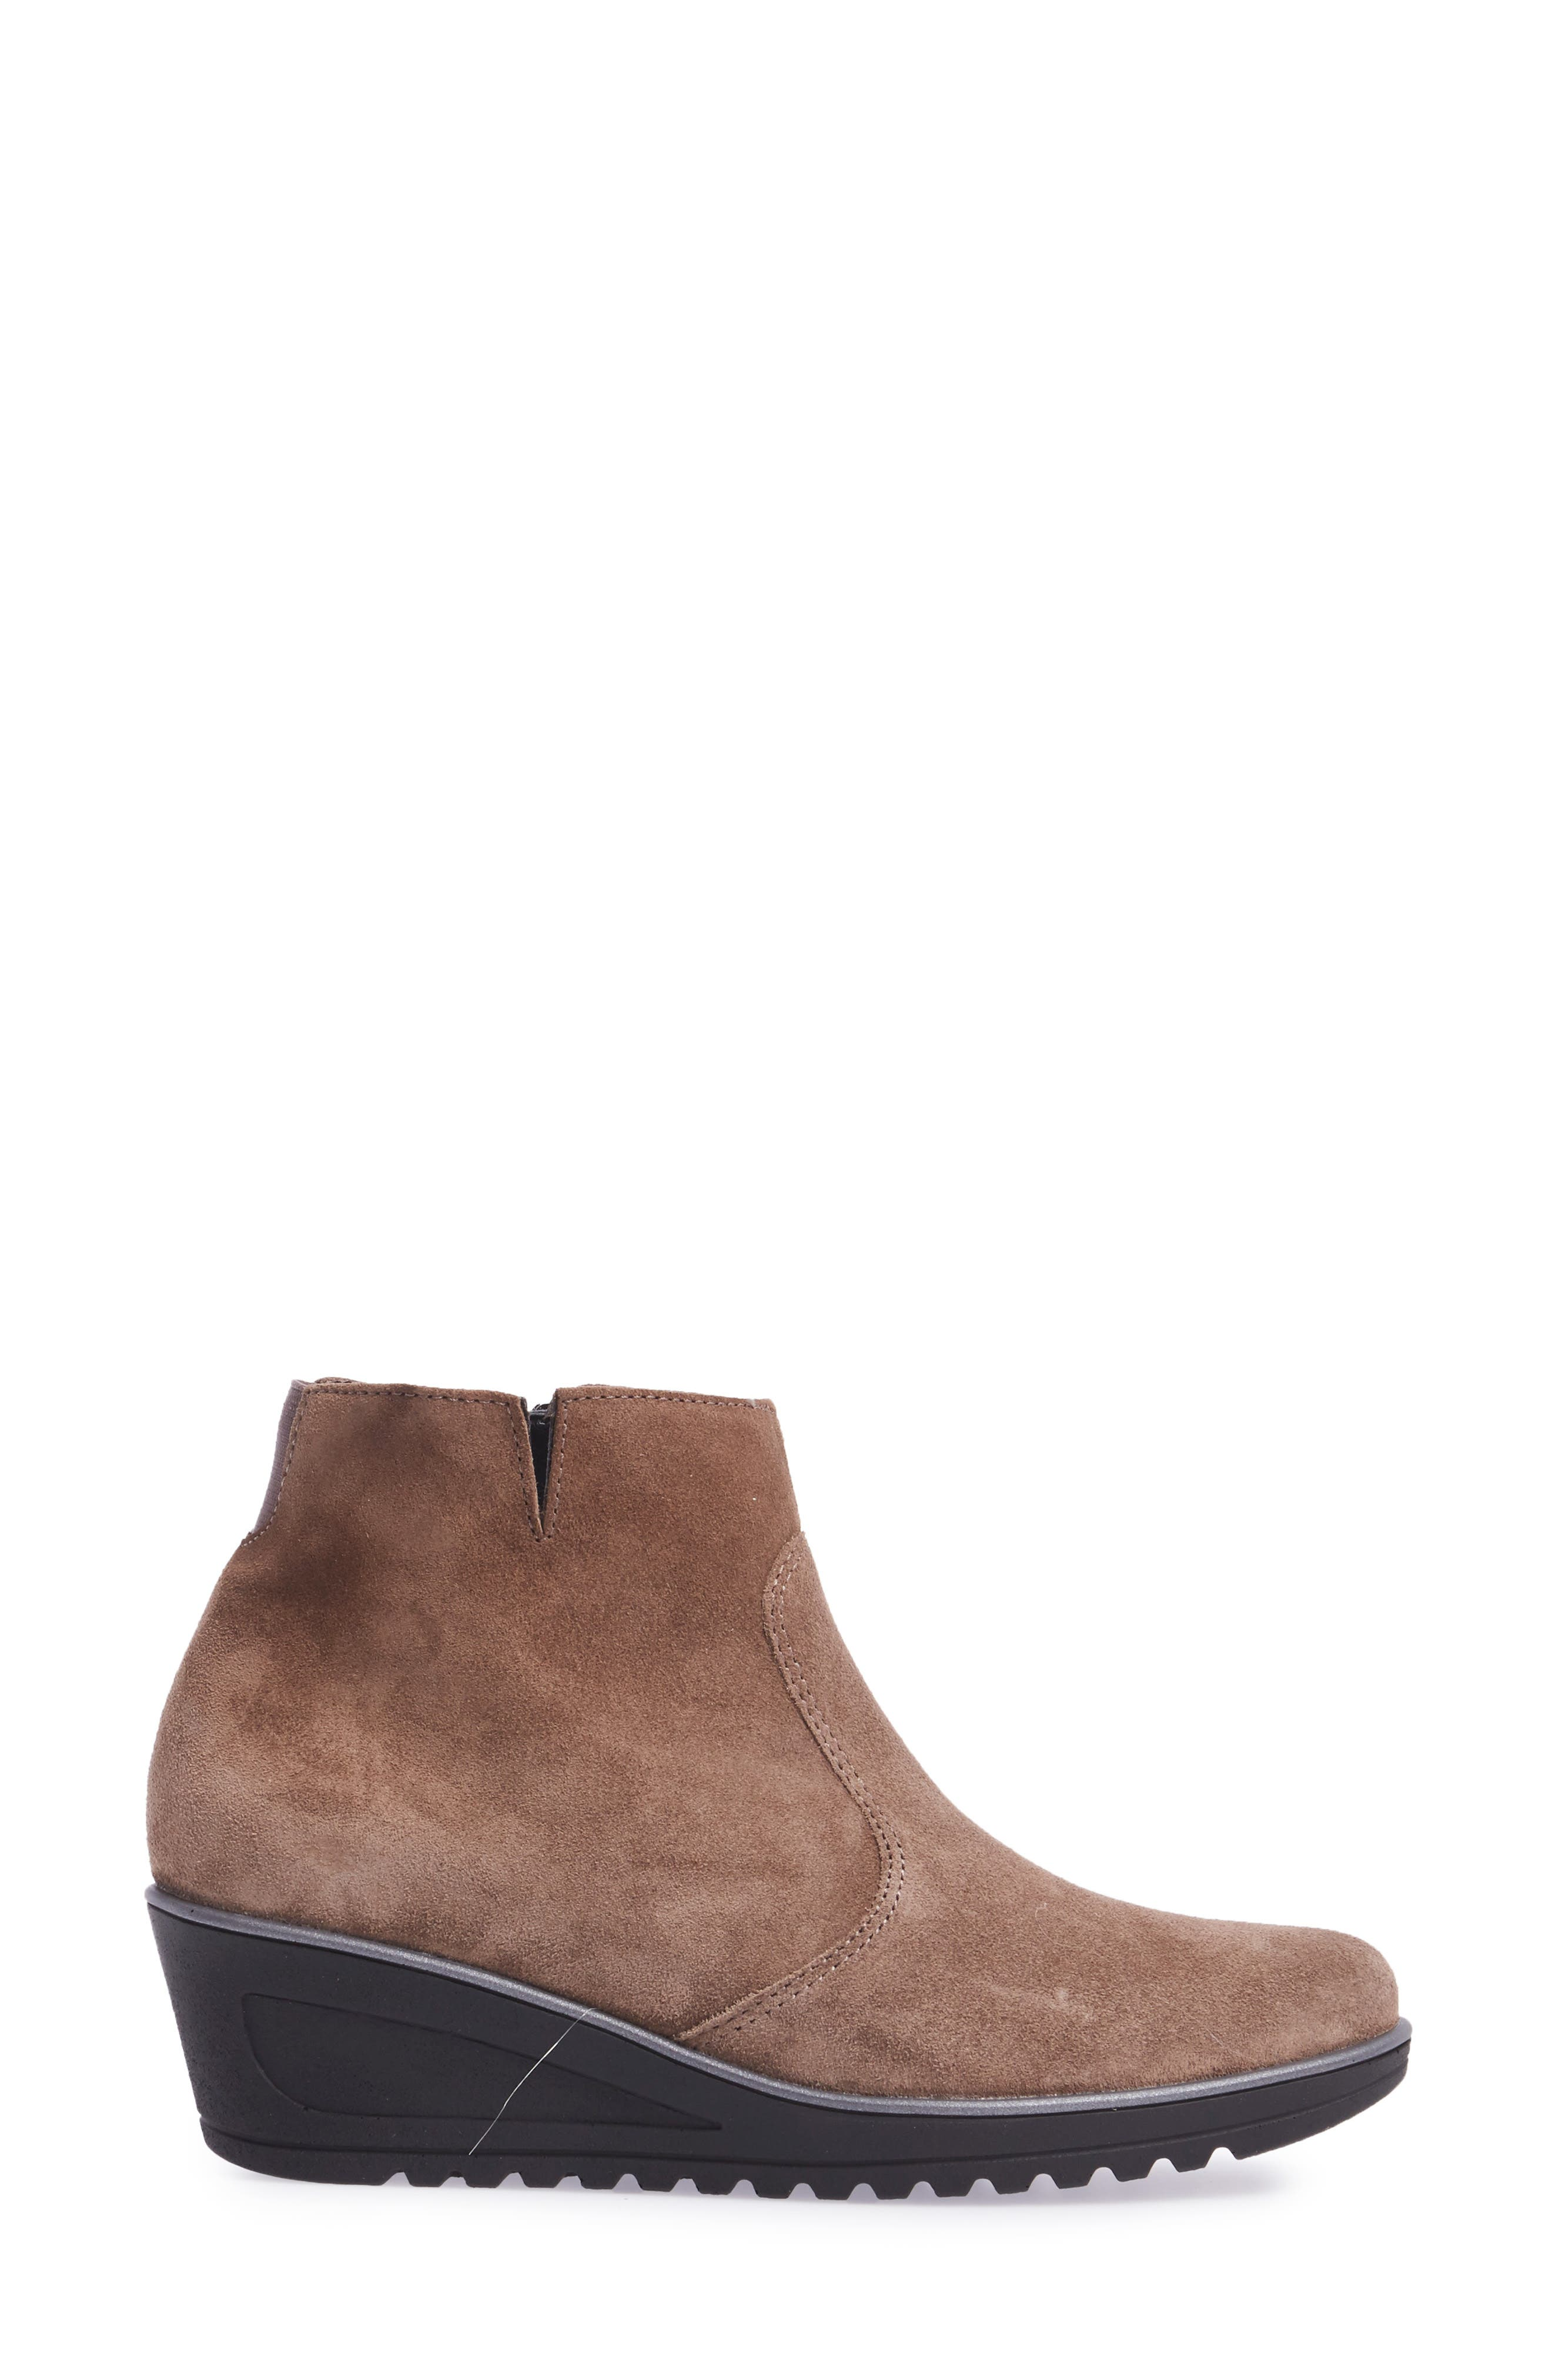 Hessa Wedge Bootie,                             Alternate thumbnail 3, color,                             Teak Suede